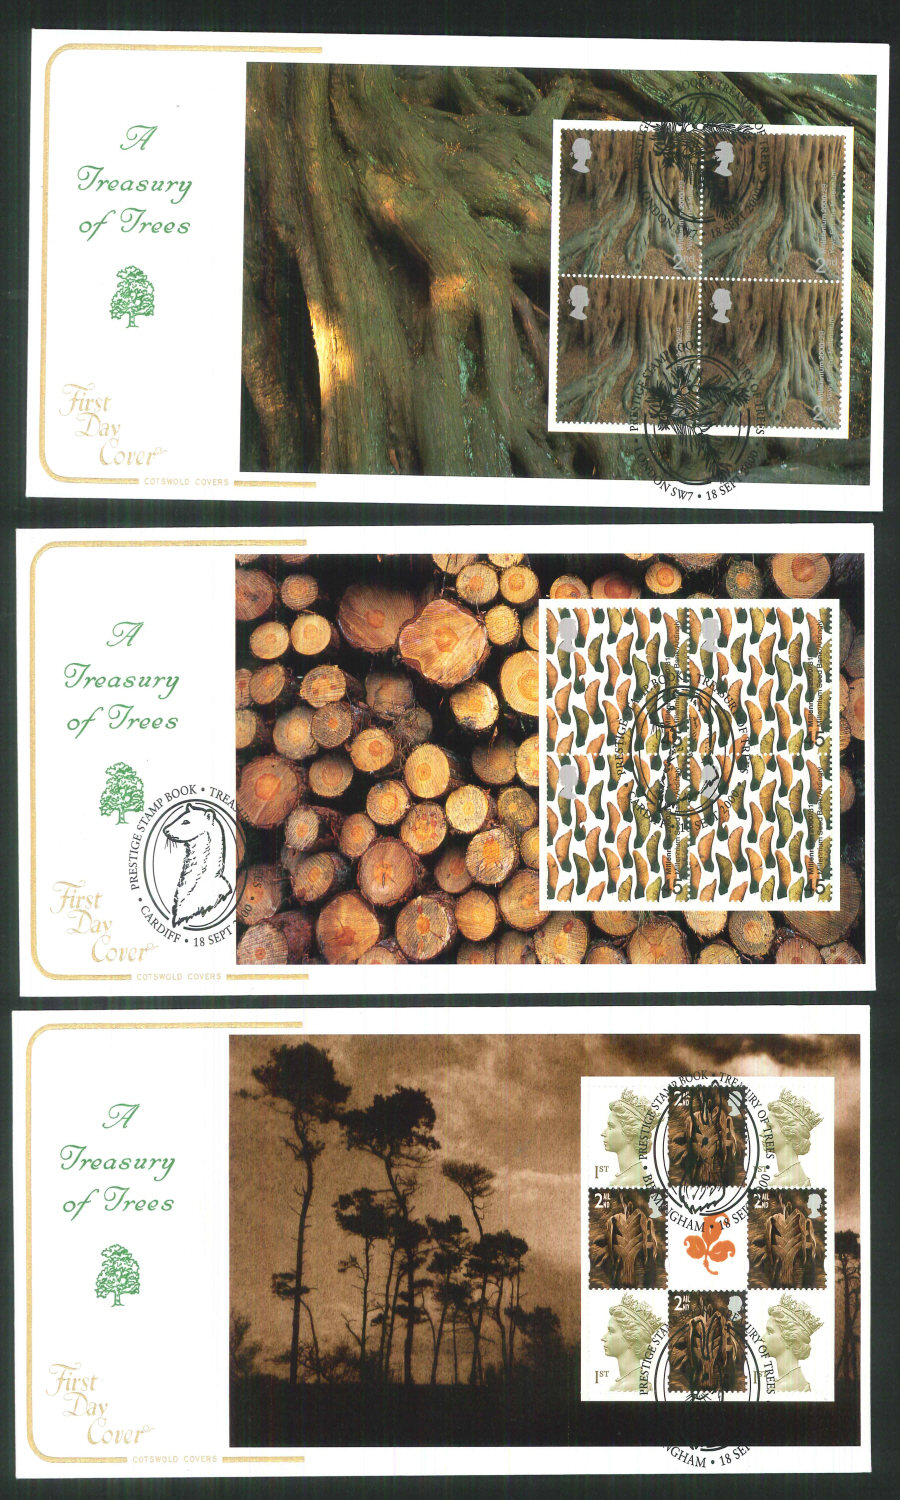 2000 - Cotswold Treasury of Trees- Prestige Stamp Book Set of 4 Covers - Various Postmarks